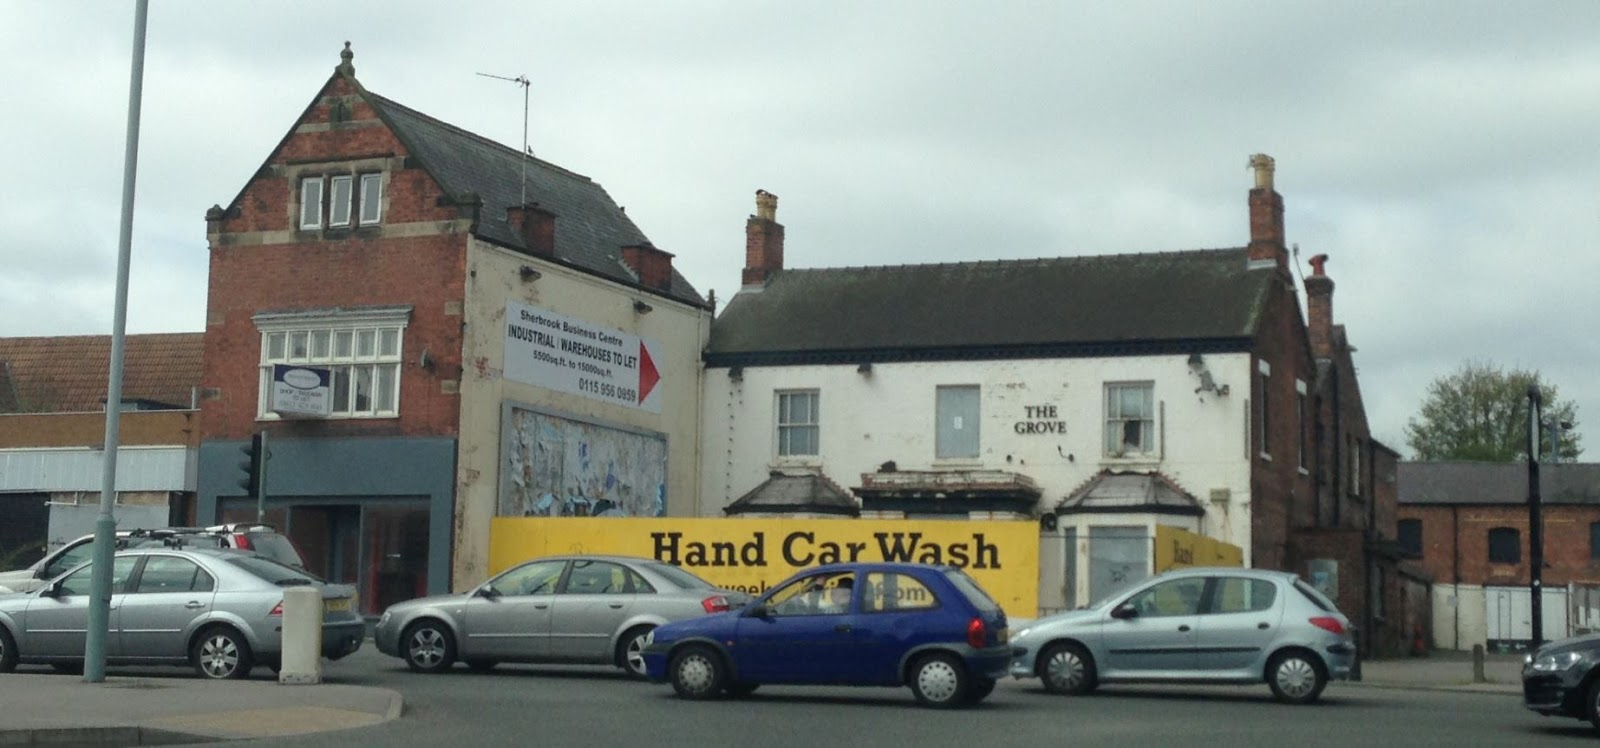 Portage Car Wash: Lost Pubs Of Nottingham: The Grove